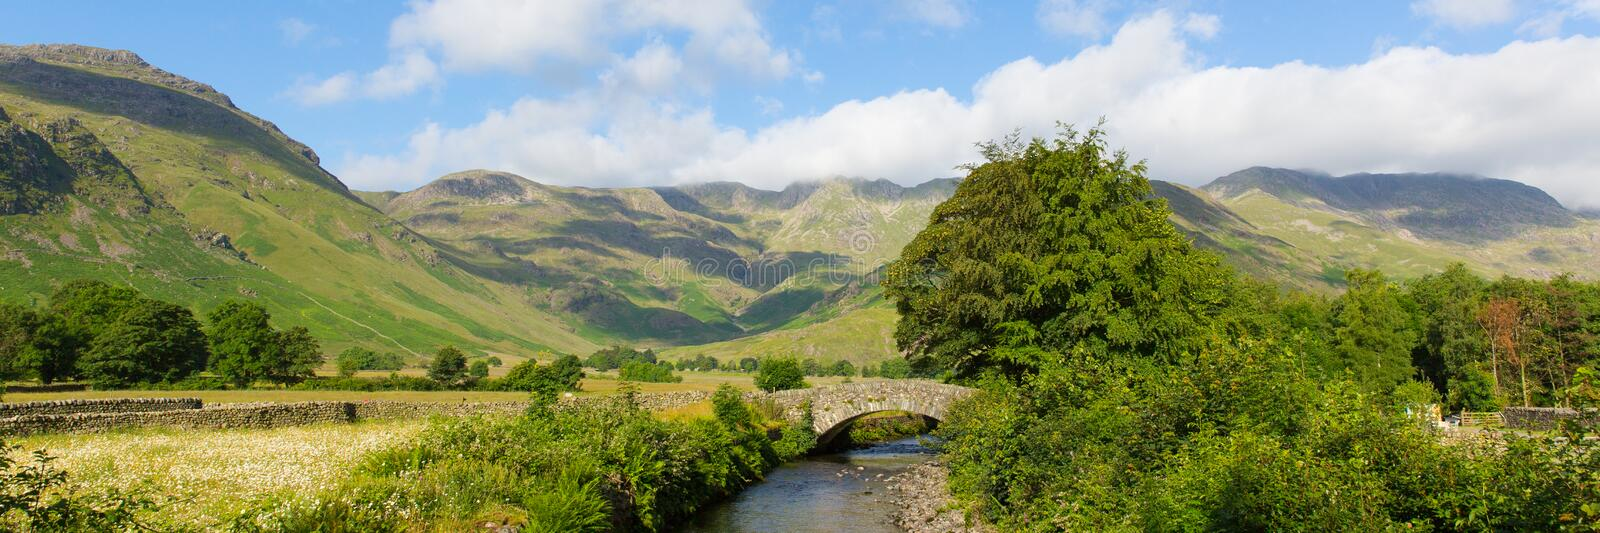 Mickleden Beck river Langdale Valley Lake District by Old Dungeon Ghyll The Lakes Cumbria England United Kingdom UK. Beautiful Lake District river Mickleden Beck royalty free stock photography